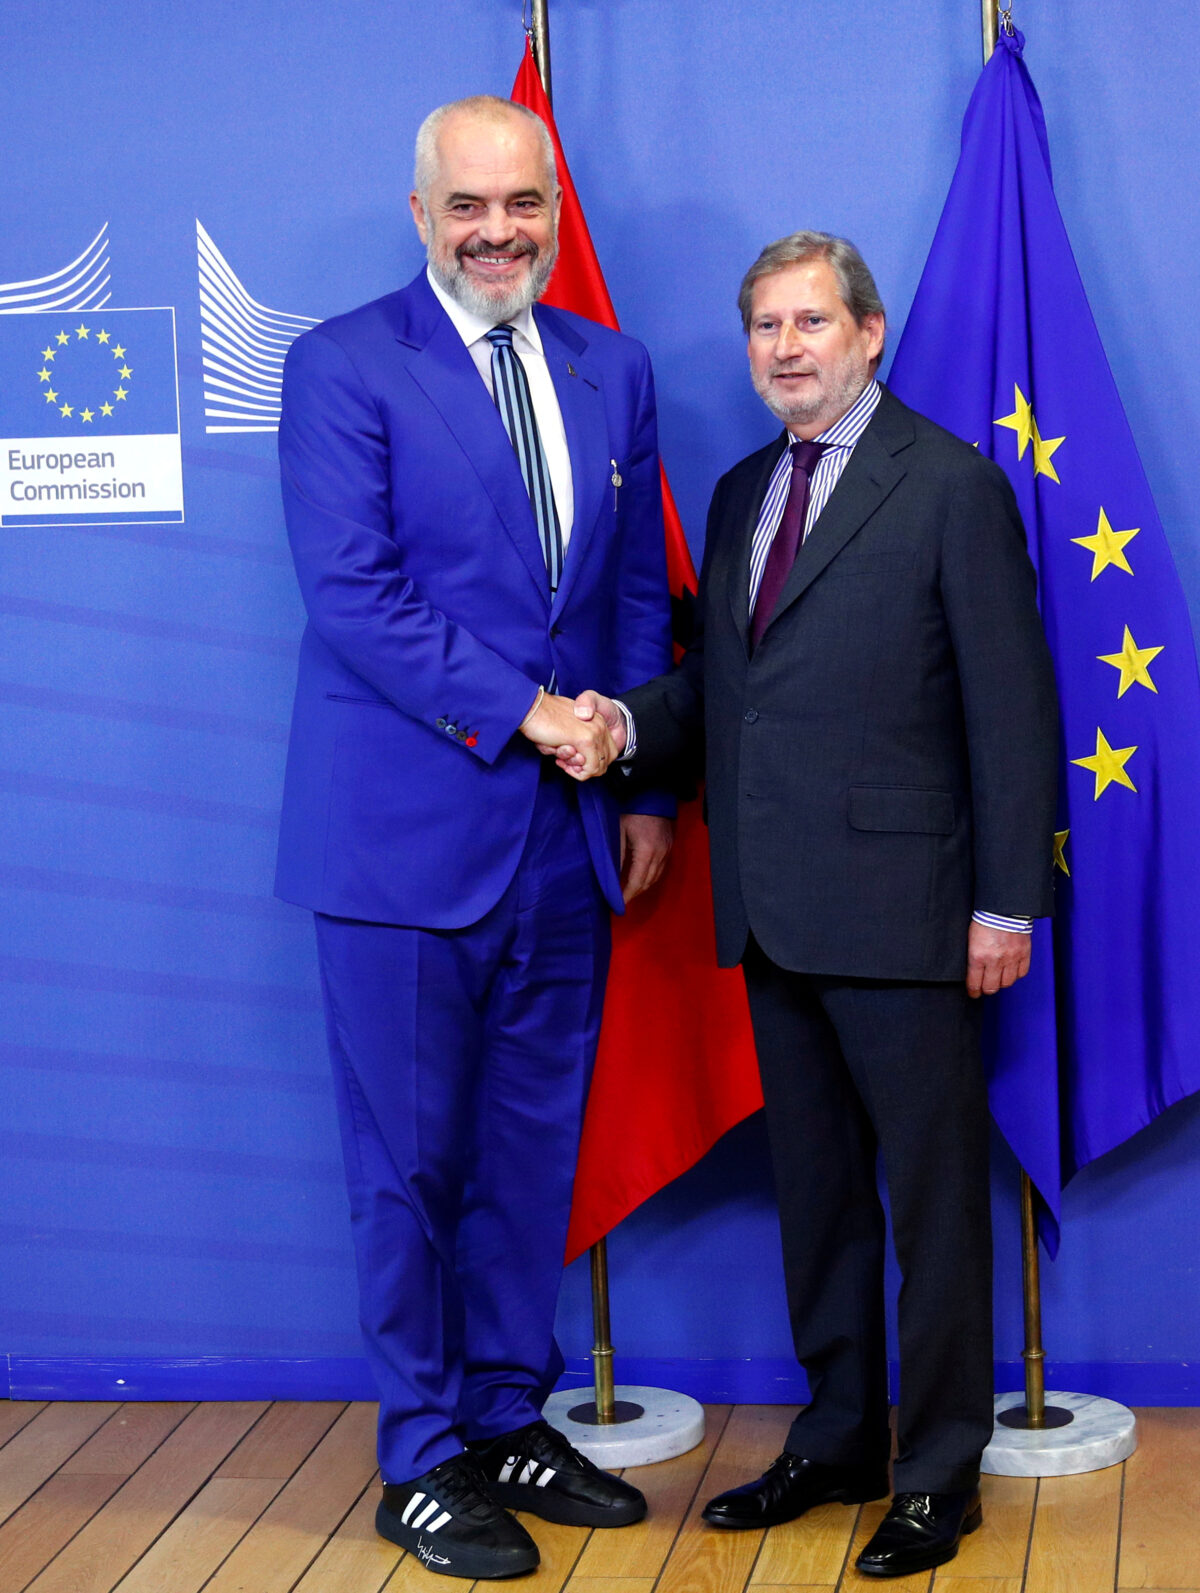 Albanian Prime Minister Edi Rama poses with European Neighbourhood Policy and Enlargement Negotiations Commissioner Johannes Hahn at the EU Commission headquarters in Brussels, Belgium October 17, 2019. (Francois Lenoir/Reuters,File Photo)